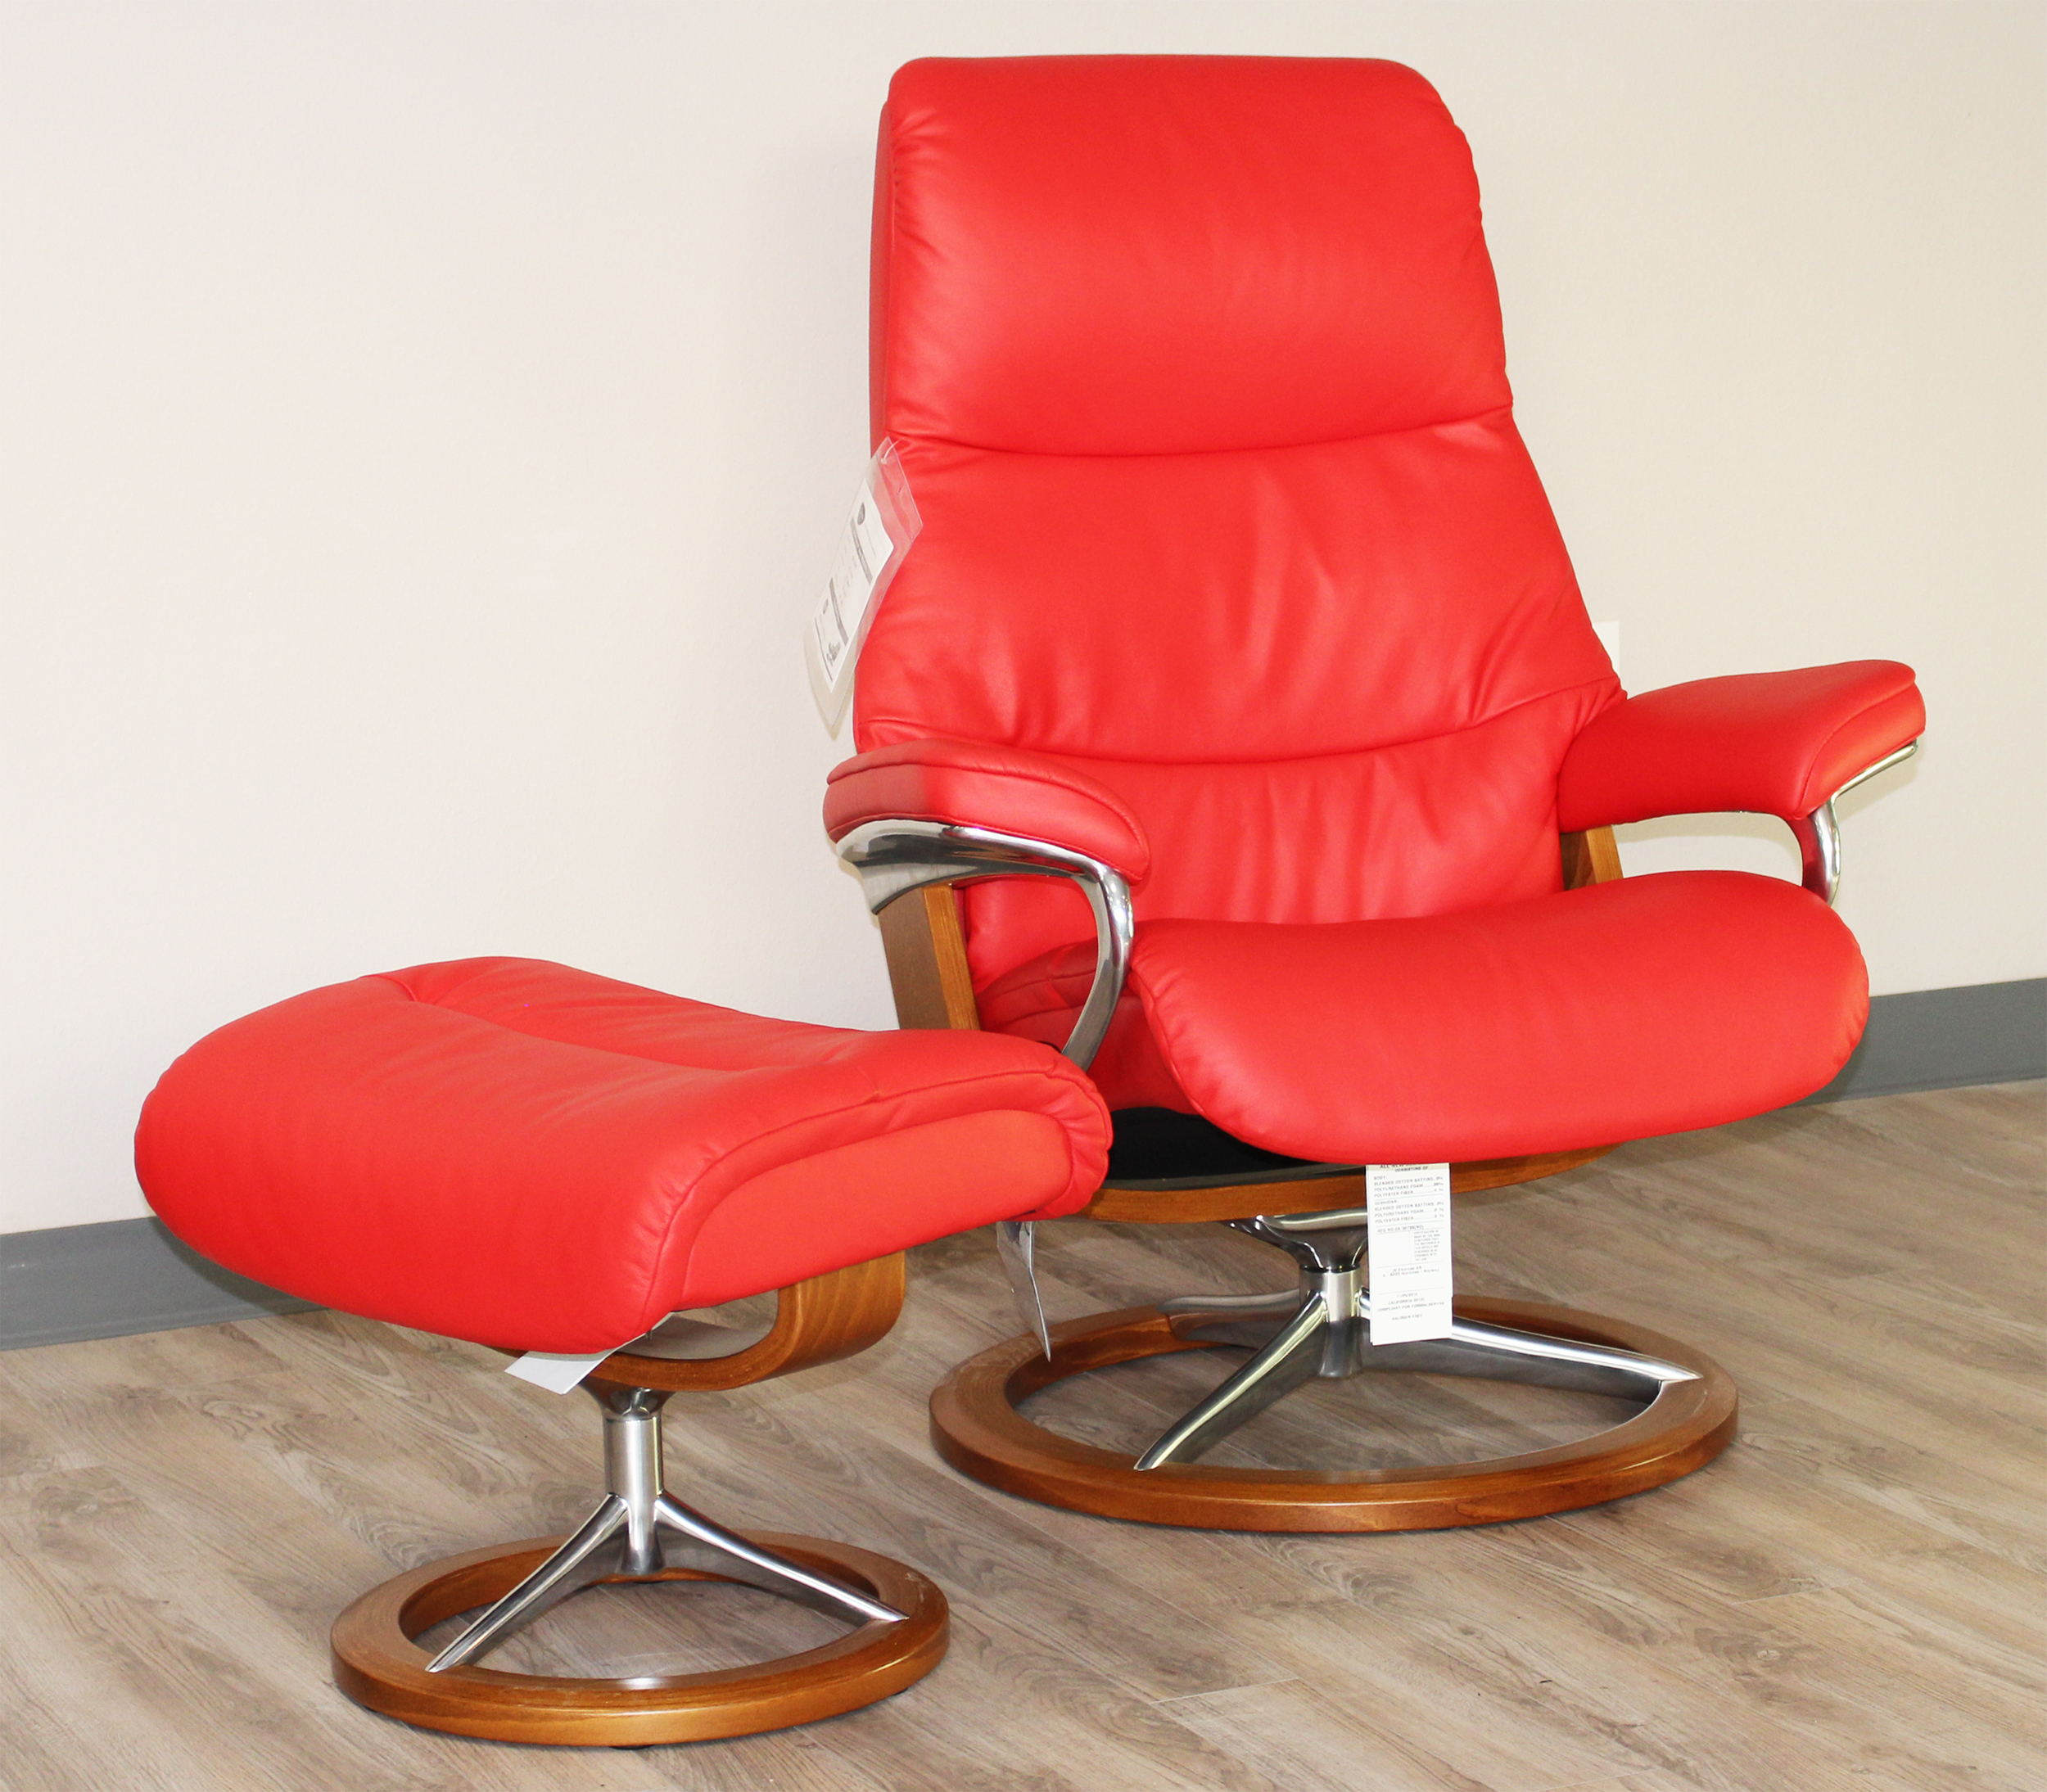 Stressless View Signature Base Medium Paloma Tomato Red Leather by